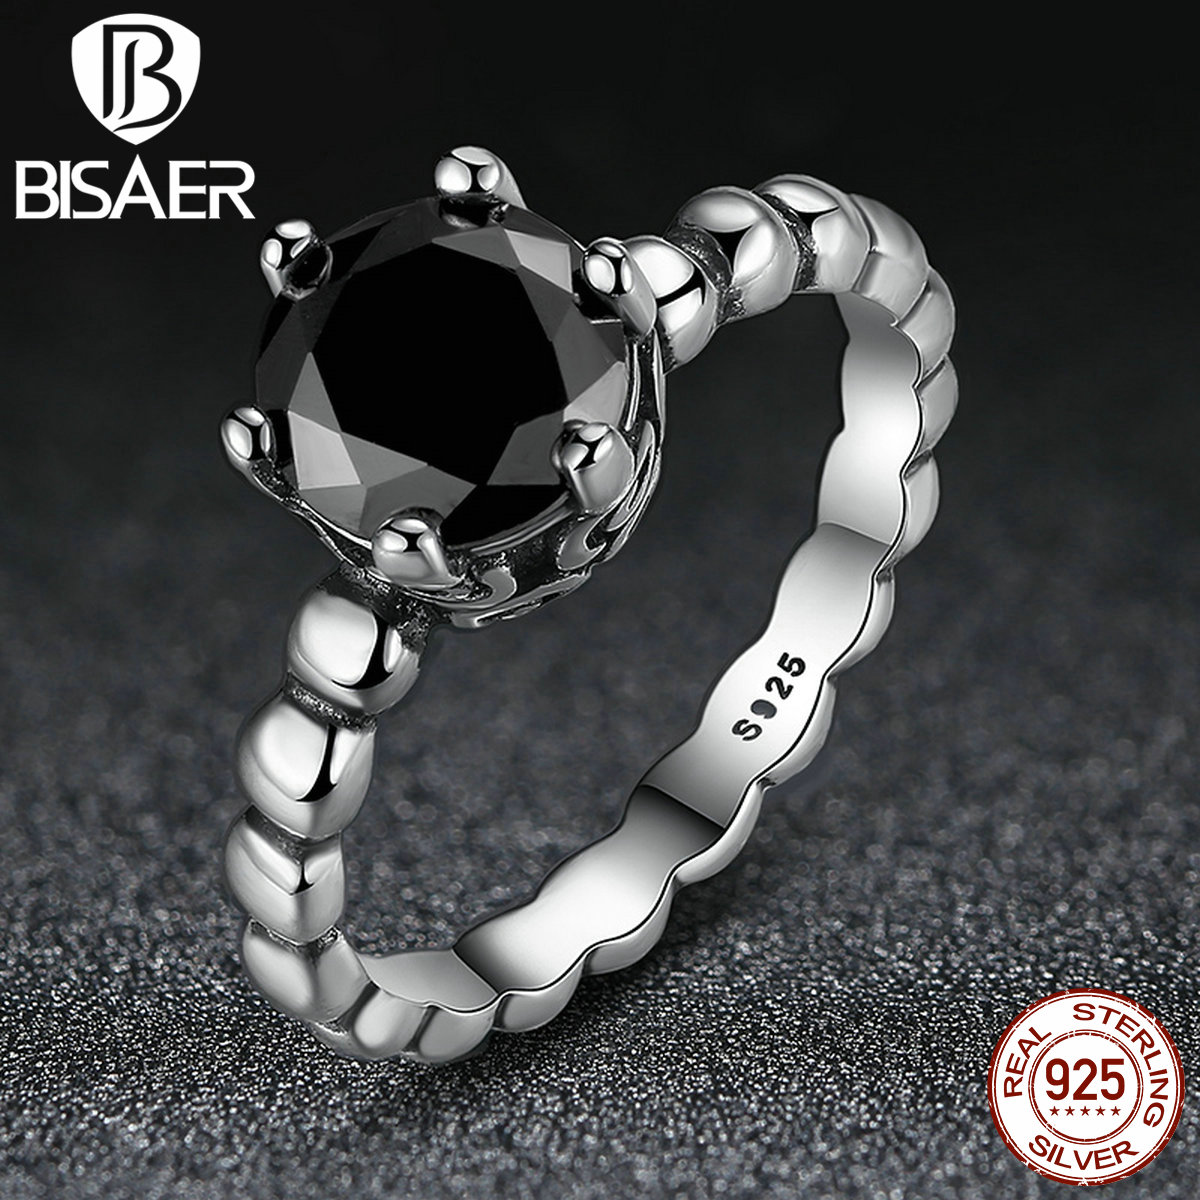 BISAER Genuine 100% 925 Sterling Silver Ring with Black Cubic Zirconia For Women Wedding Compatible with Pandora Jewelry(China (Mainland))